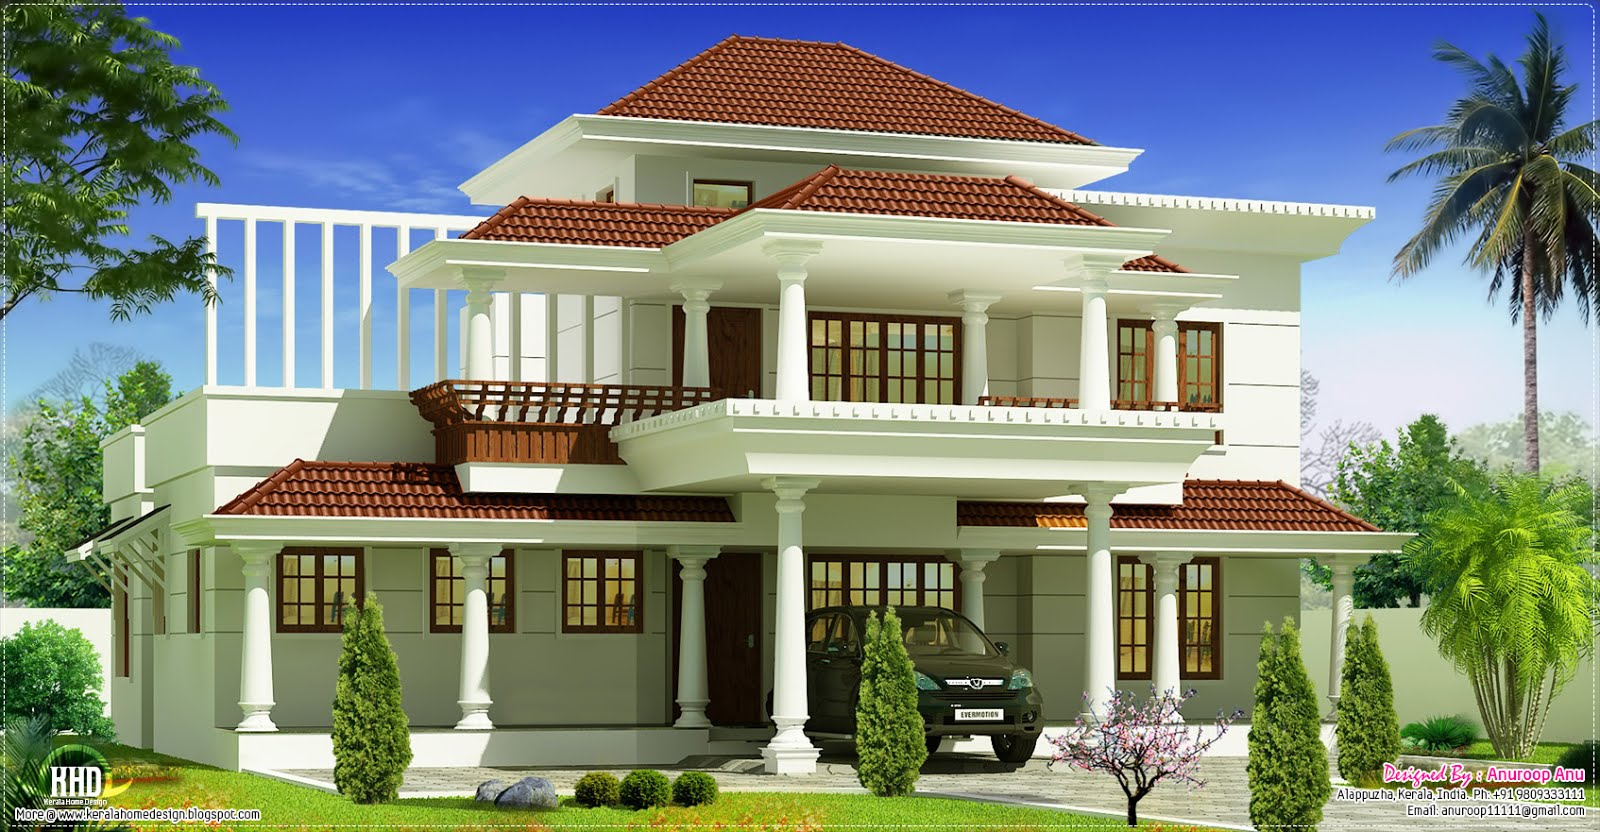 My dream house rublevka where russia s superelite live for Colonial style house plans kerala